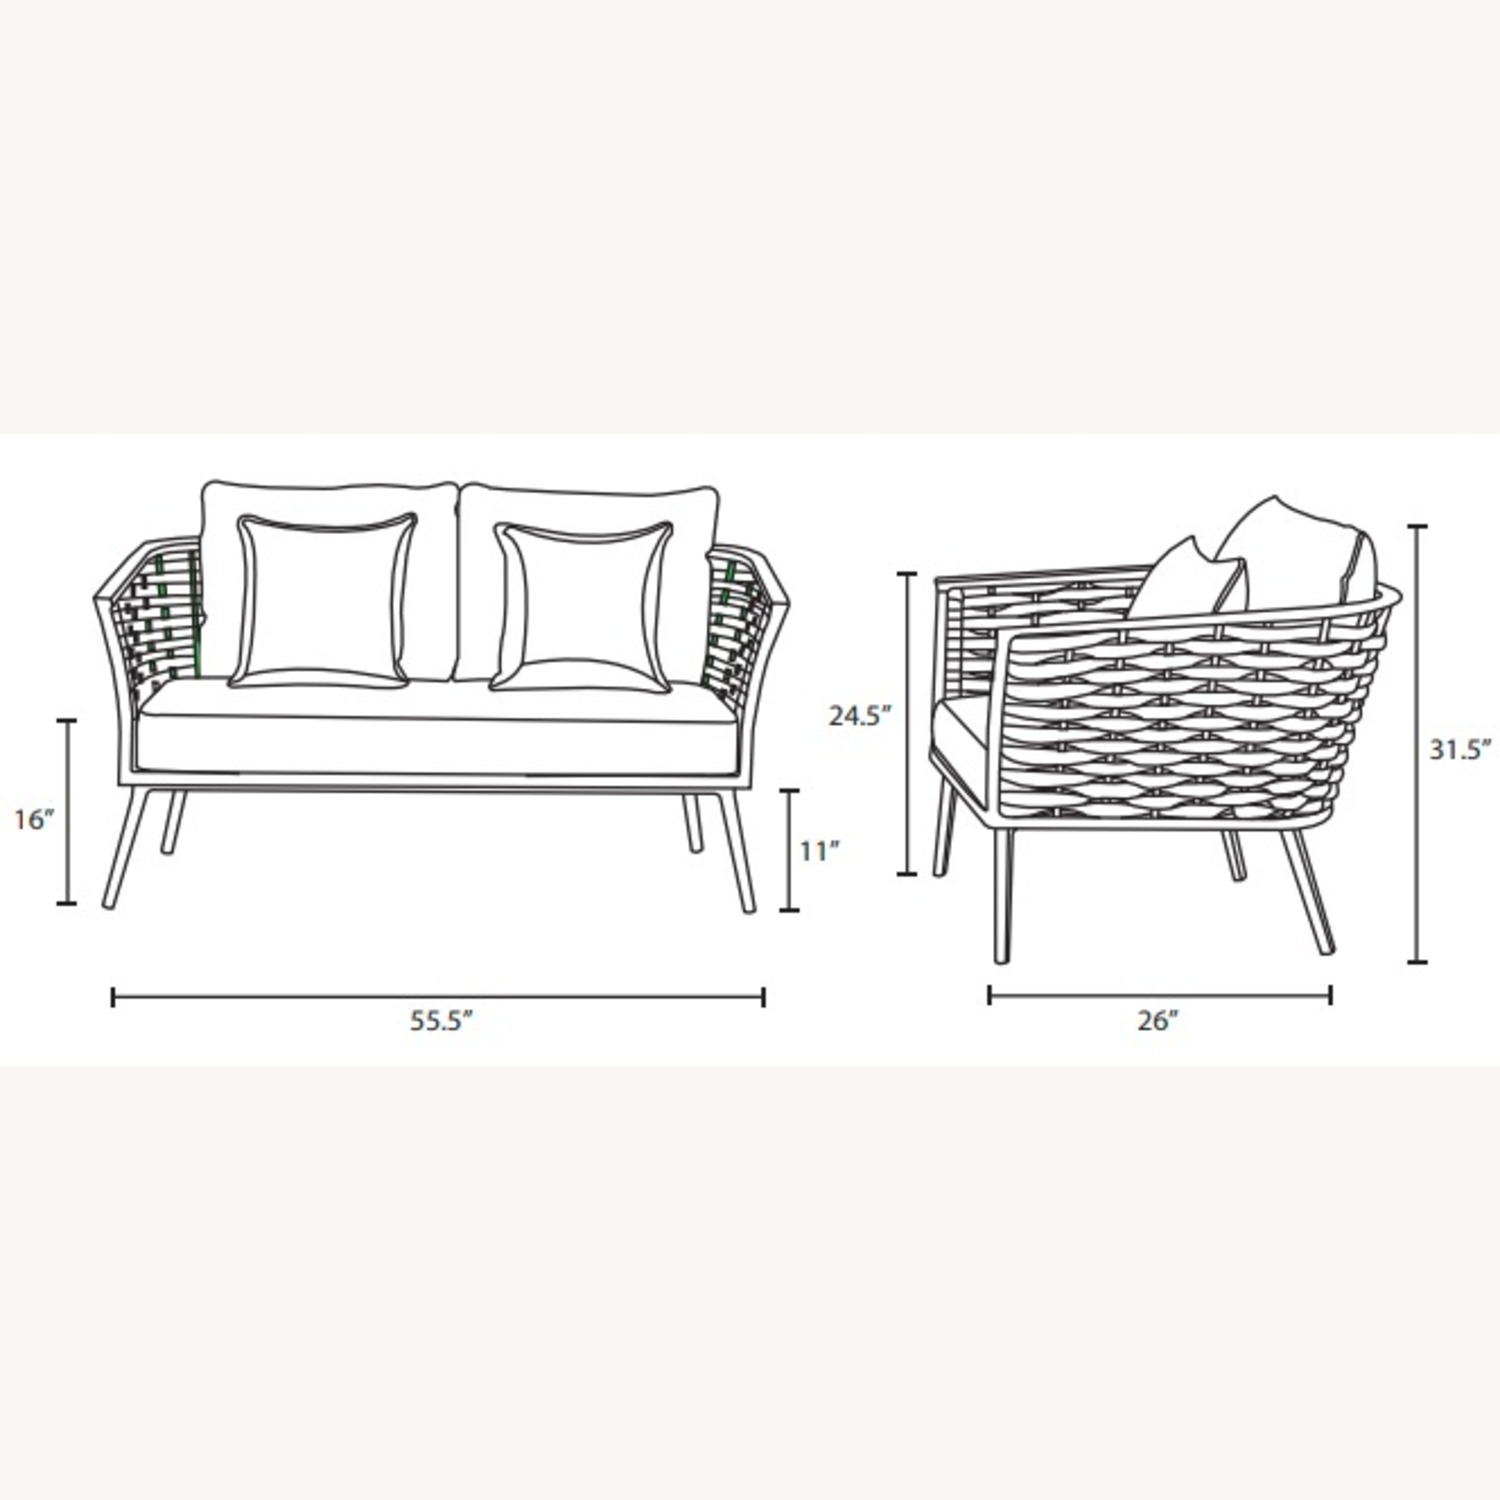 Outdoor Loveseat In Gray Fabric Rope & White Frame - image-5